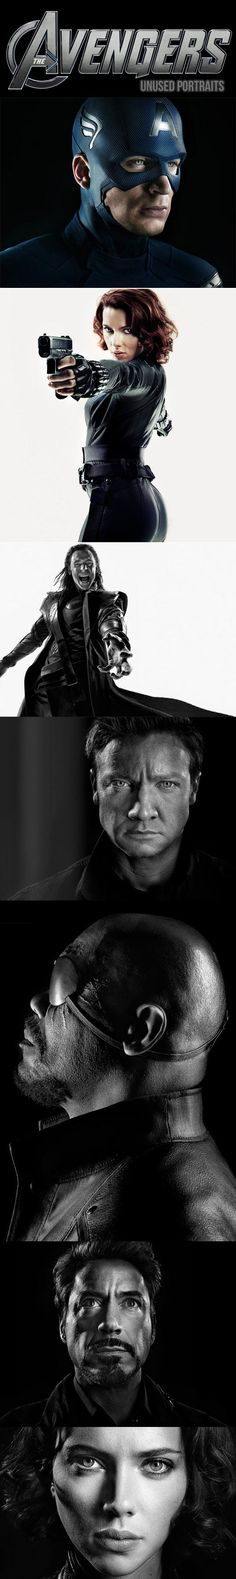 Funny pictures about Awesome Unused Portraits From The Avengers. Oh, and cool pics about Awesome Unused Portraits From The Avengers. Also, Awesome Unused Portraits From The Avengers photos. Marvel Avengers, Marvel Comics, Films Marvel, Marvel Heroes, Science Fiction, Jeremy Renner, Joss Whedon, Chris Hemsworth, Loki